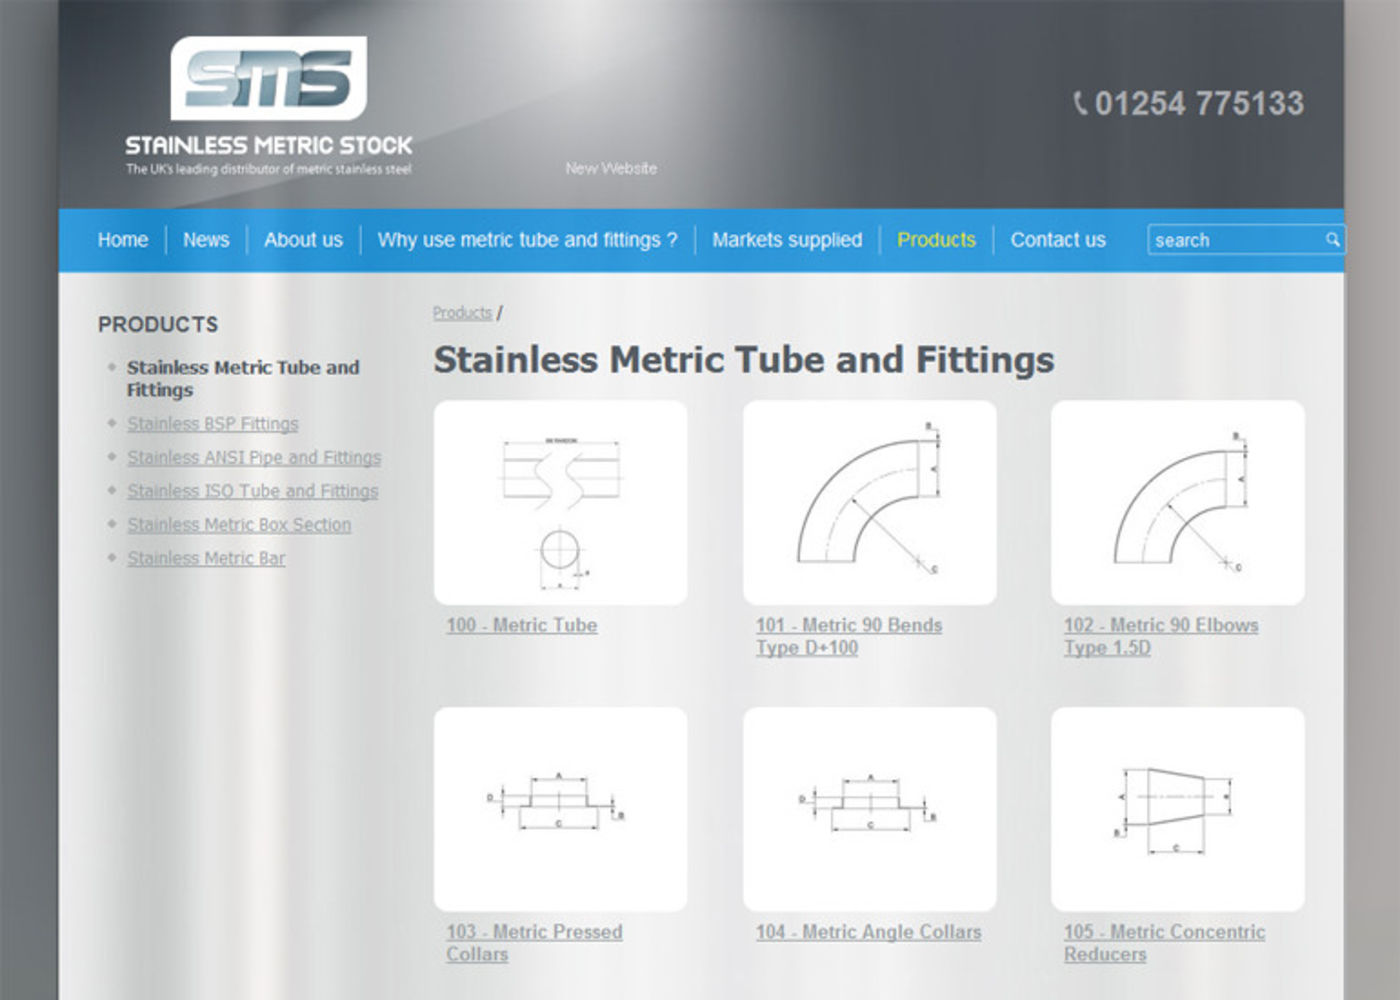 Stainless Metric Stock Ltd Products - SMS Ltd